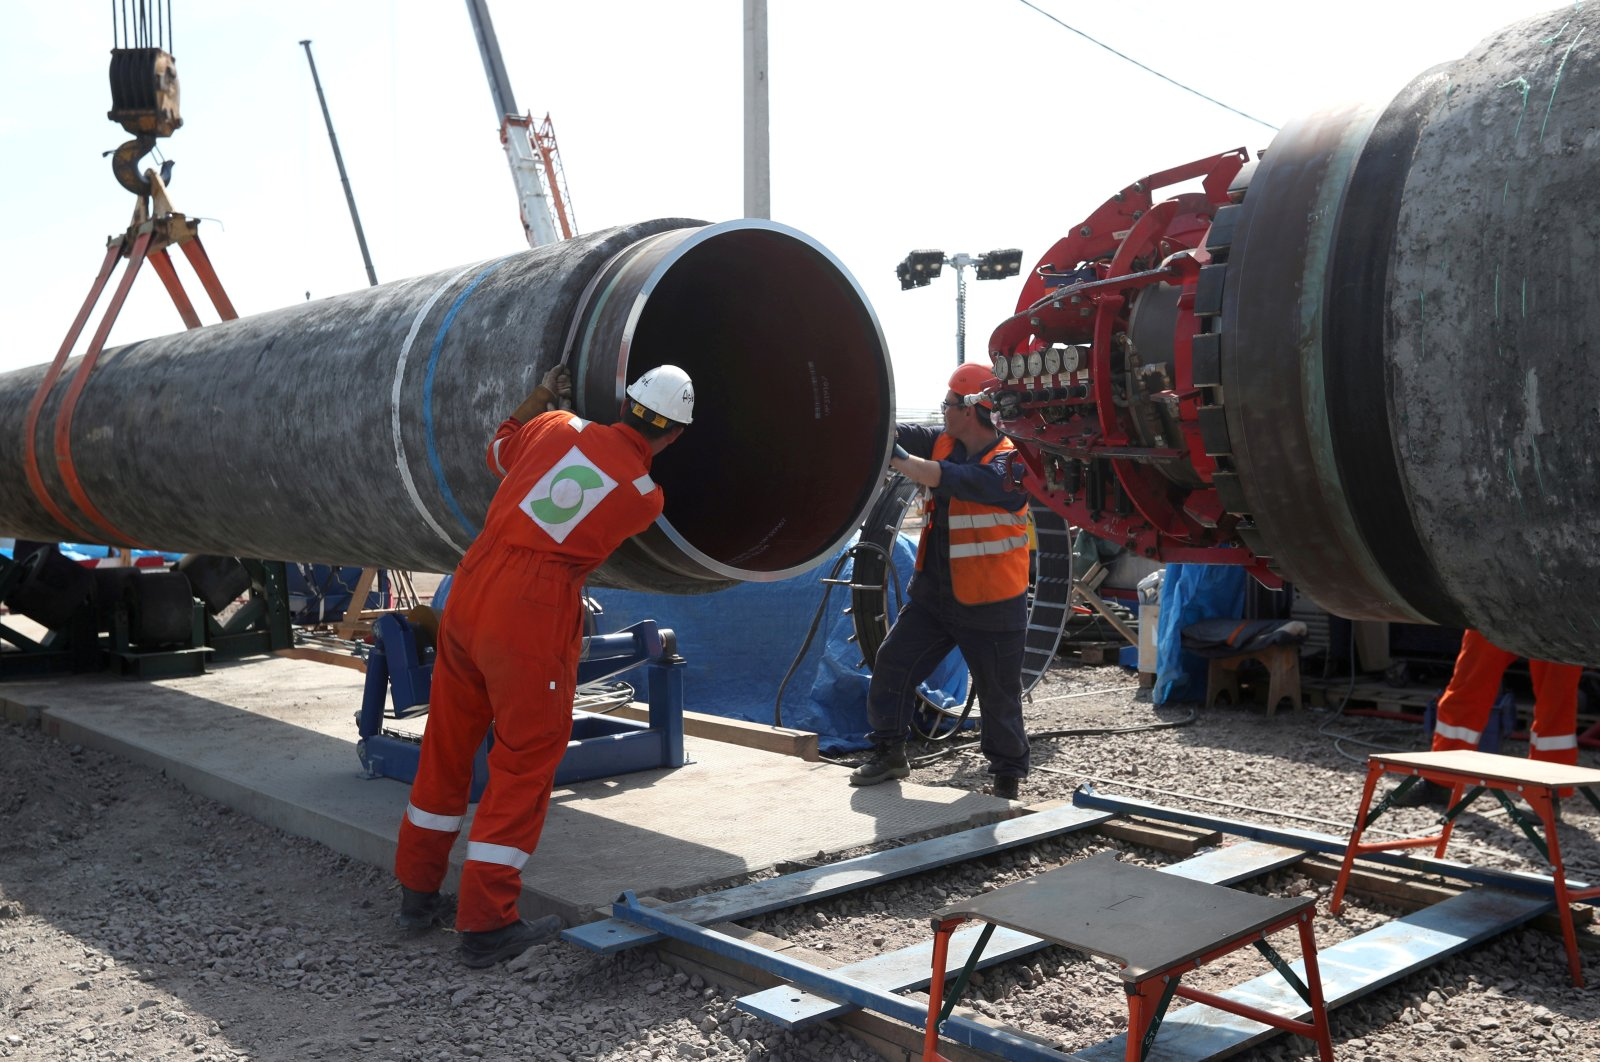 Workers are seen at theconstruction siteof the NordStream2 gas pipeline, near the town of Kingisepp, Leningrad region, Russia, June 5, 2019. (Reuters Photo)